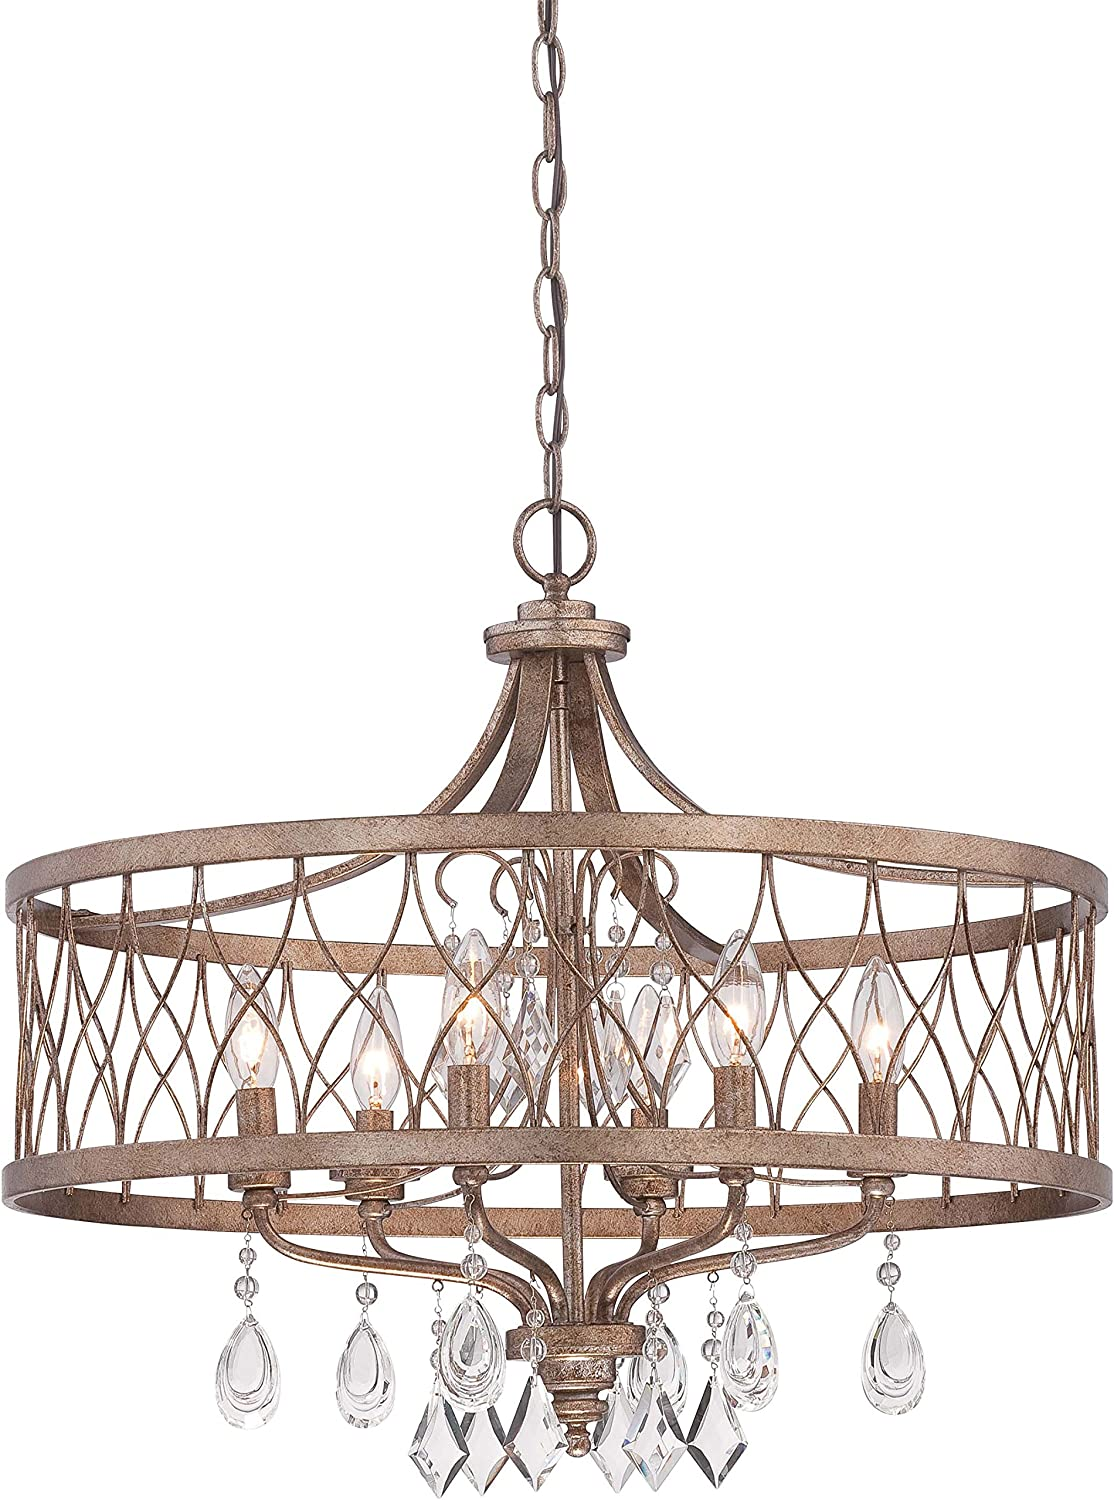 Minka Lavery 4406-581 West Liberty 1 Tier Dining Room Crystal Chandelier Pendant Lighting, 6 Light, 360 Watts, Olympus Gold